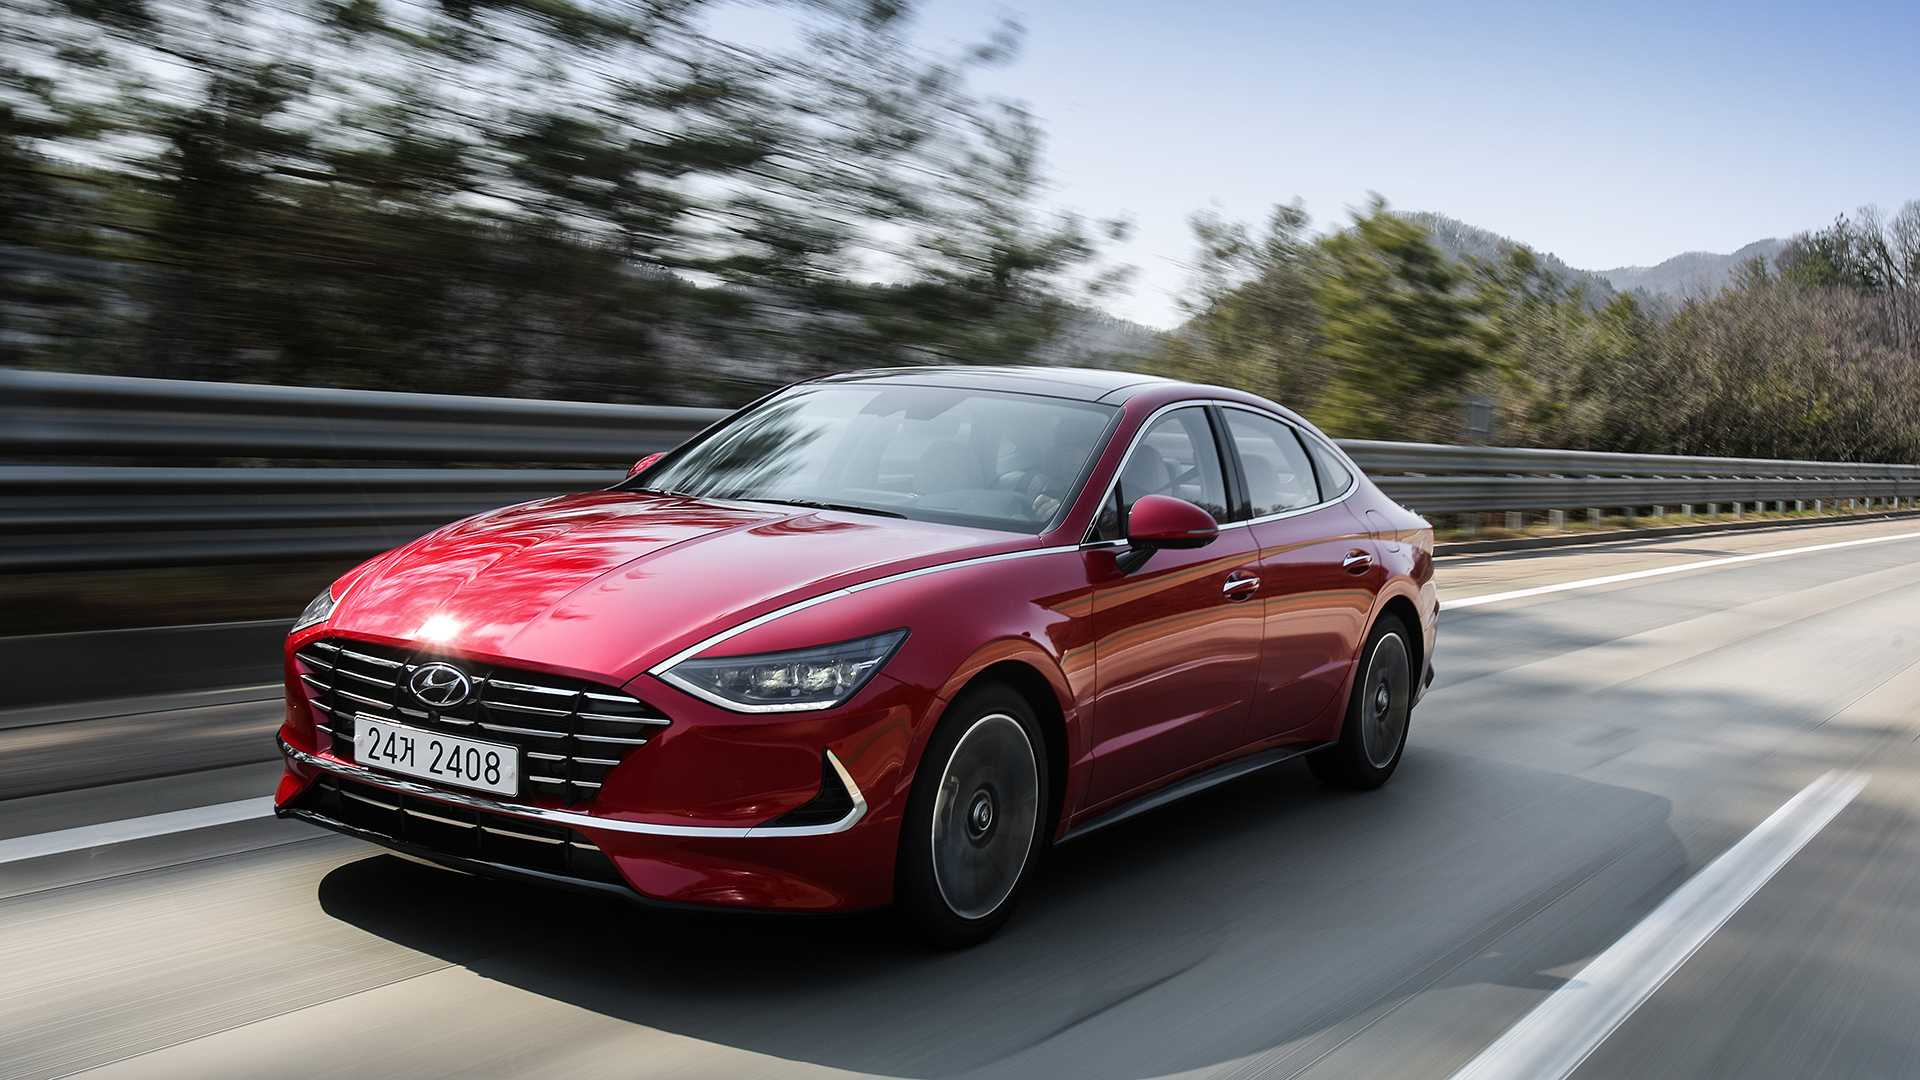 59 Great Pictures Of The 2020 Hyundai Sonata Wallpaper by Pictures Of The 2020 Hyundai Sonata